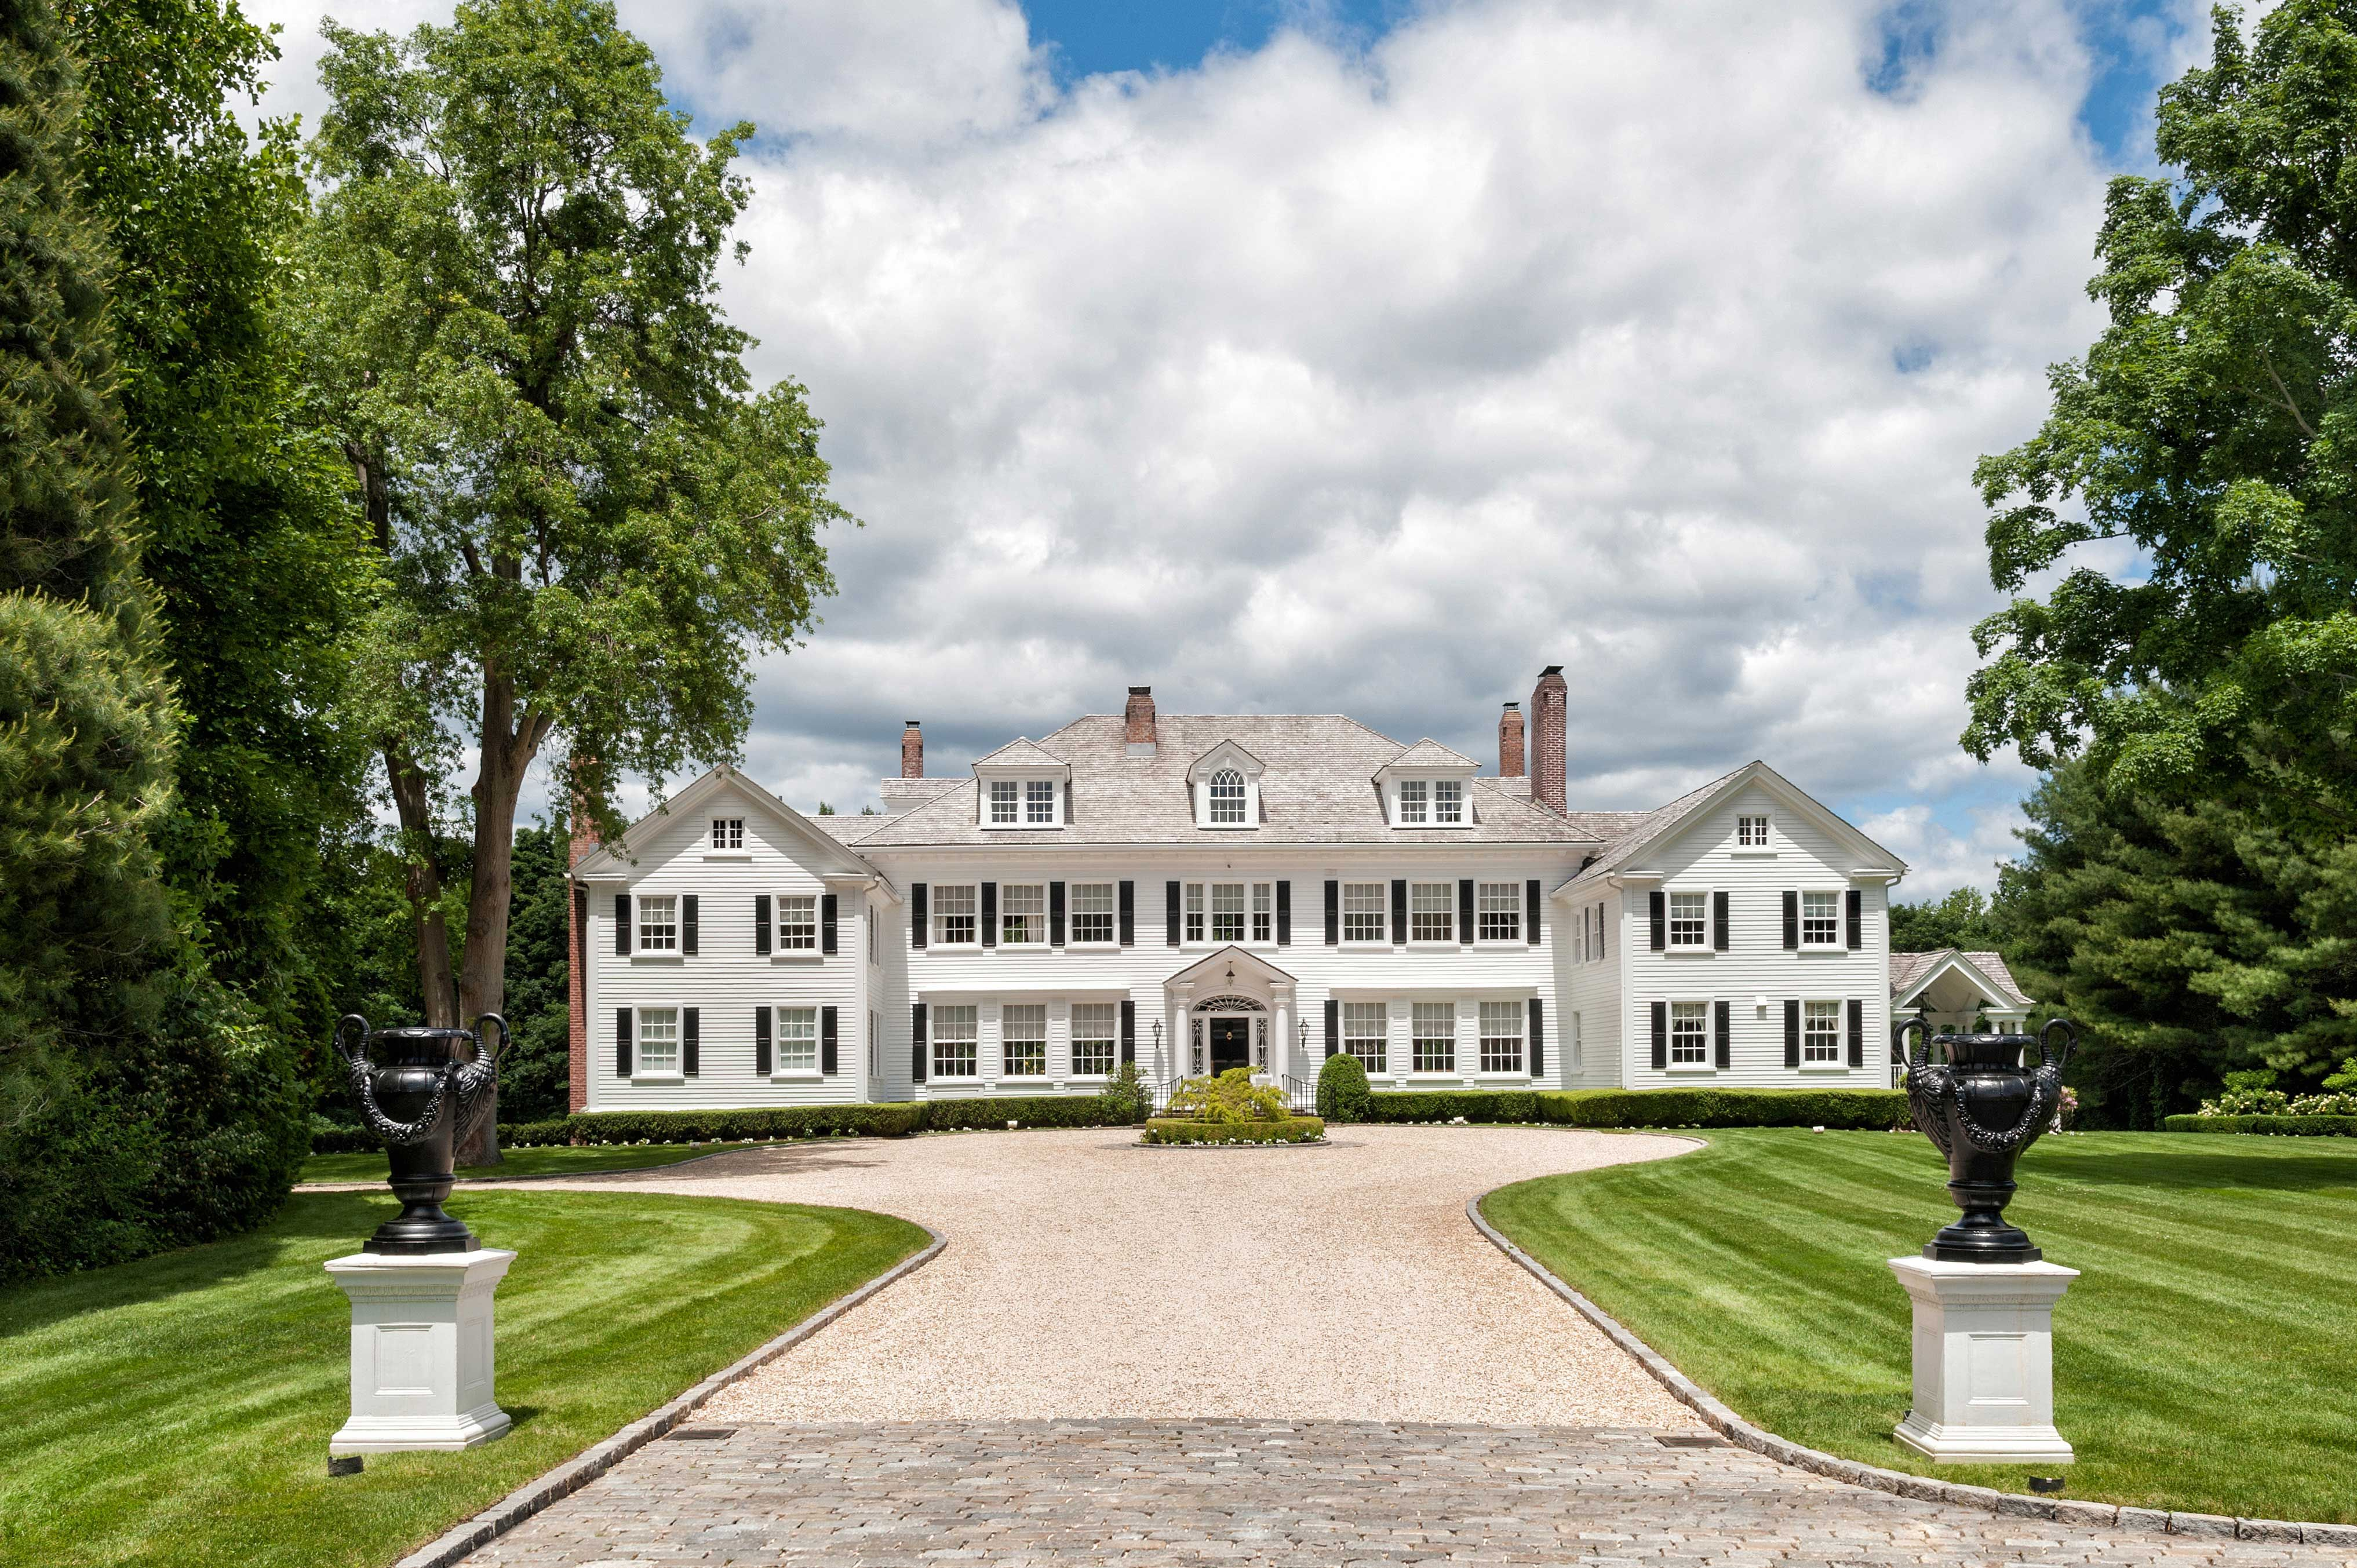 Money Pit Movie House For Sale Long Island Home In The Money Pit